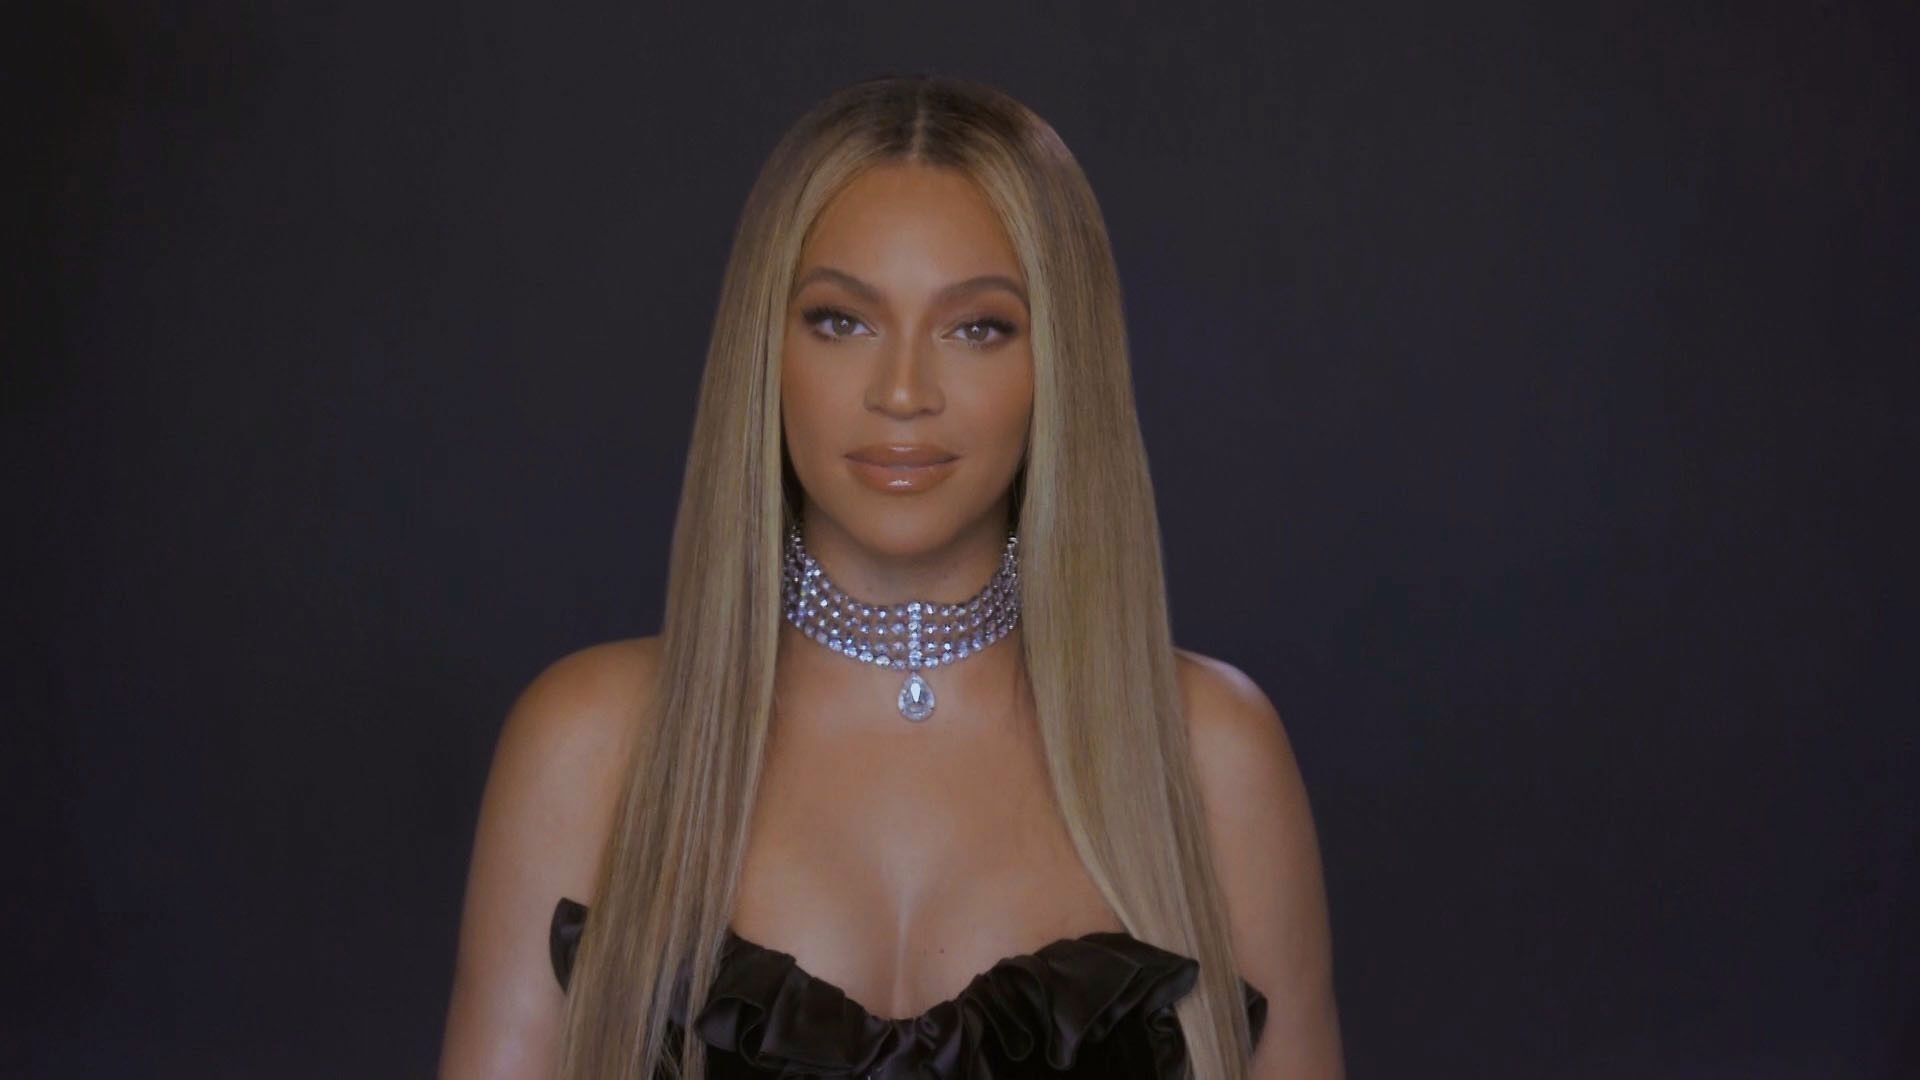 beyonce BET Awards 2020 Humanitarian Award speech